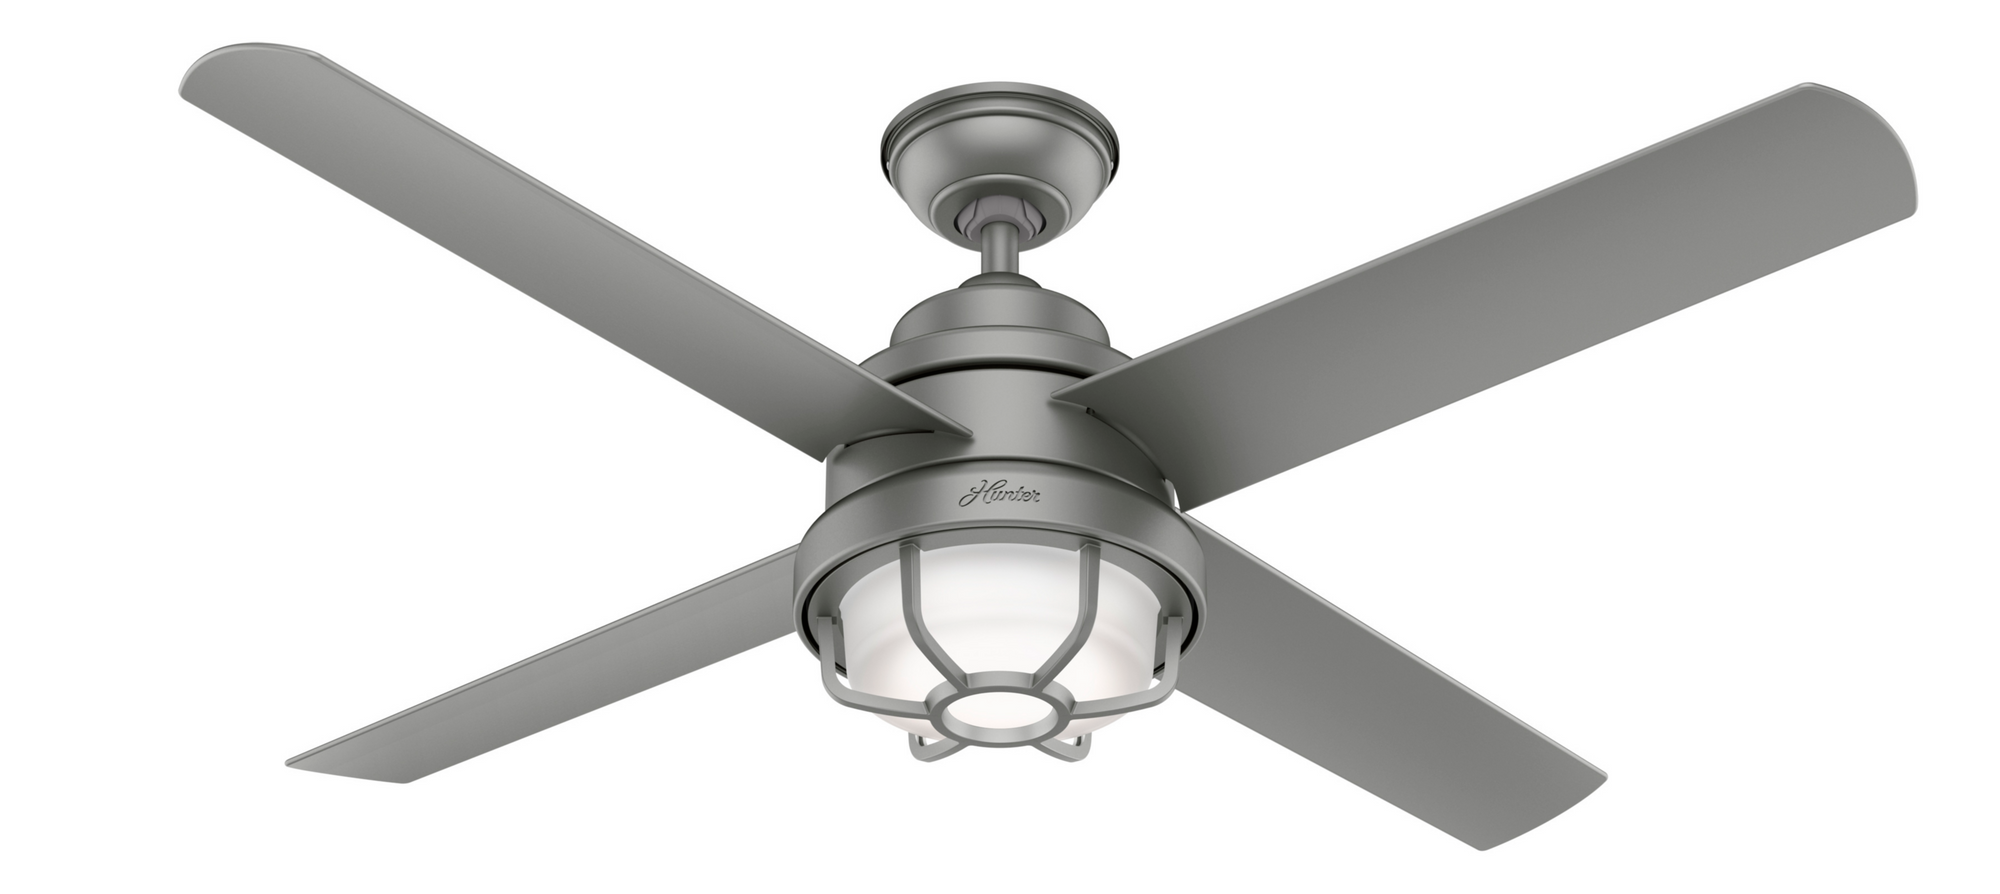 Hunter Indoor/Outdoor Searow Ceiling Fan with LED LightJD inch, Brushed Nickel/Chrome, 55085